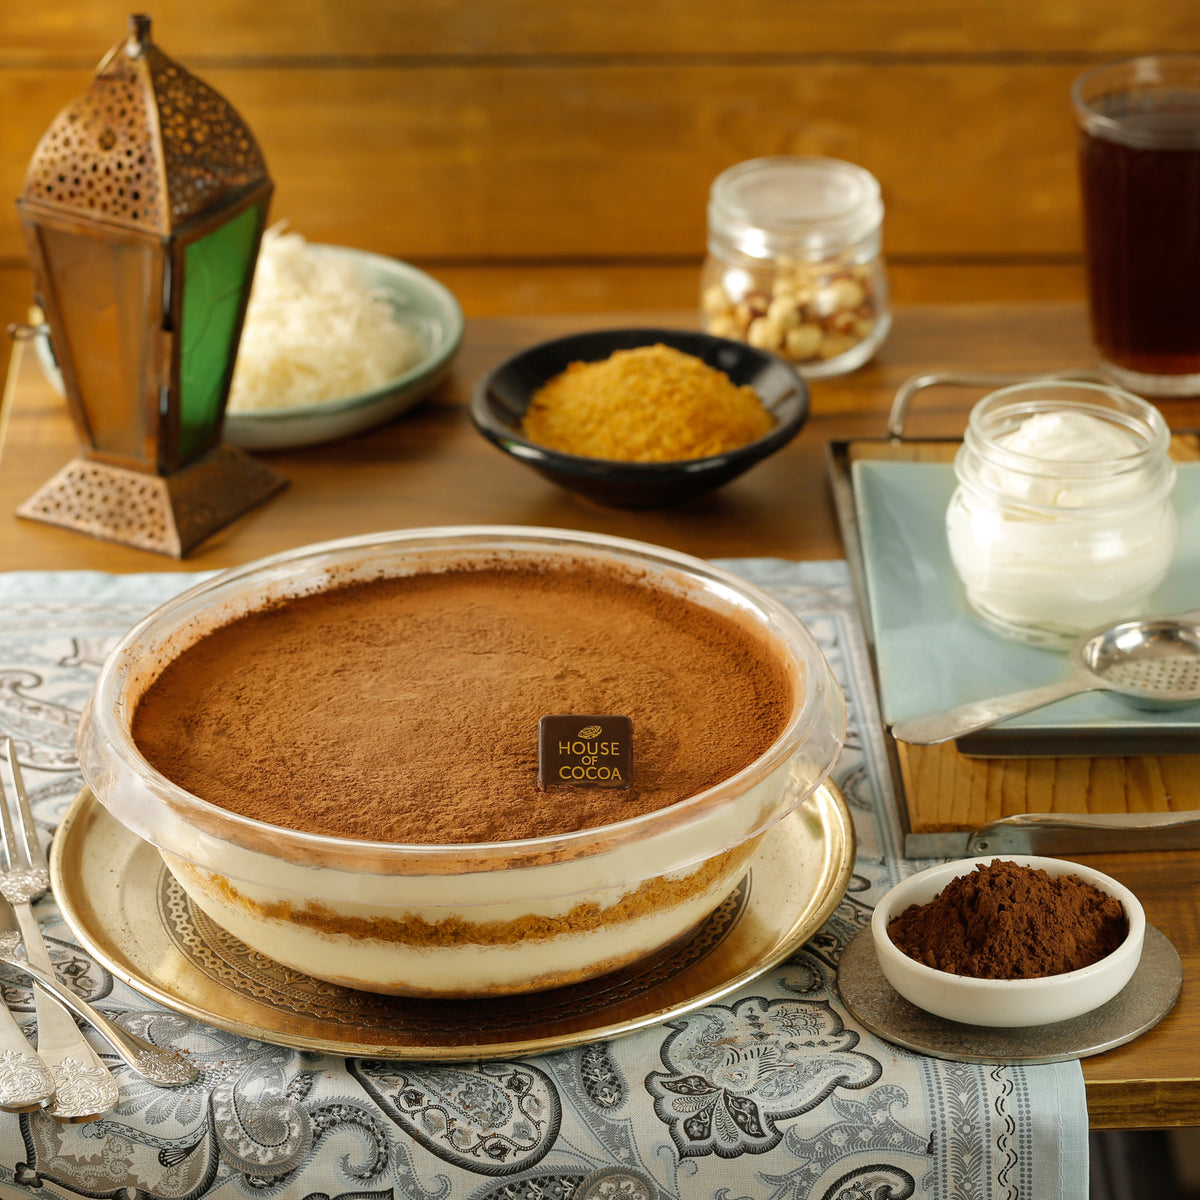 Konafa with Tiramisu - Large